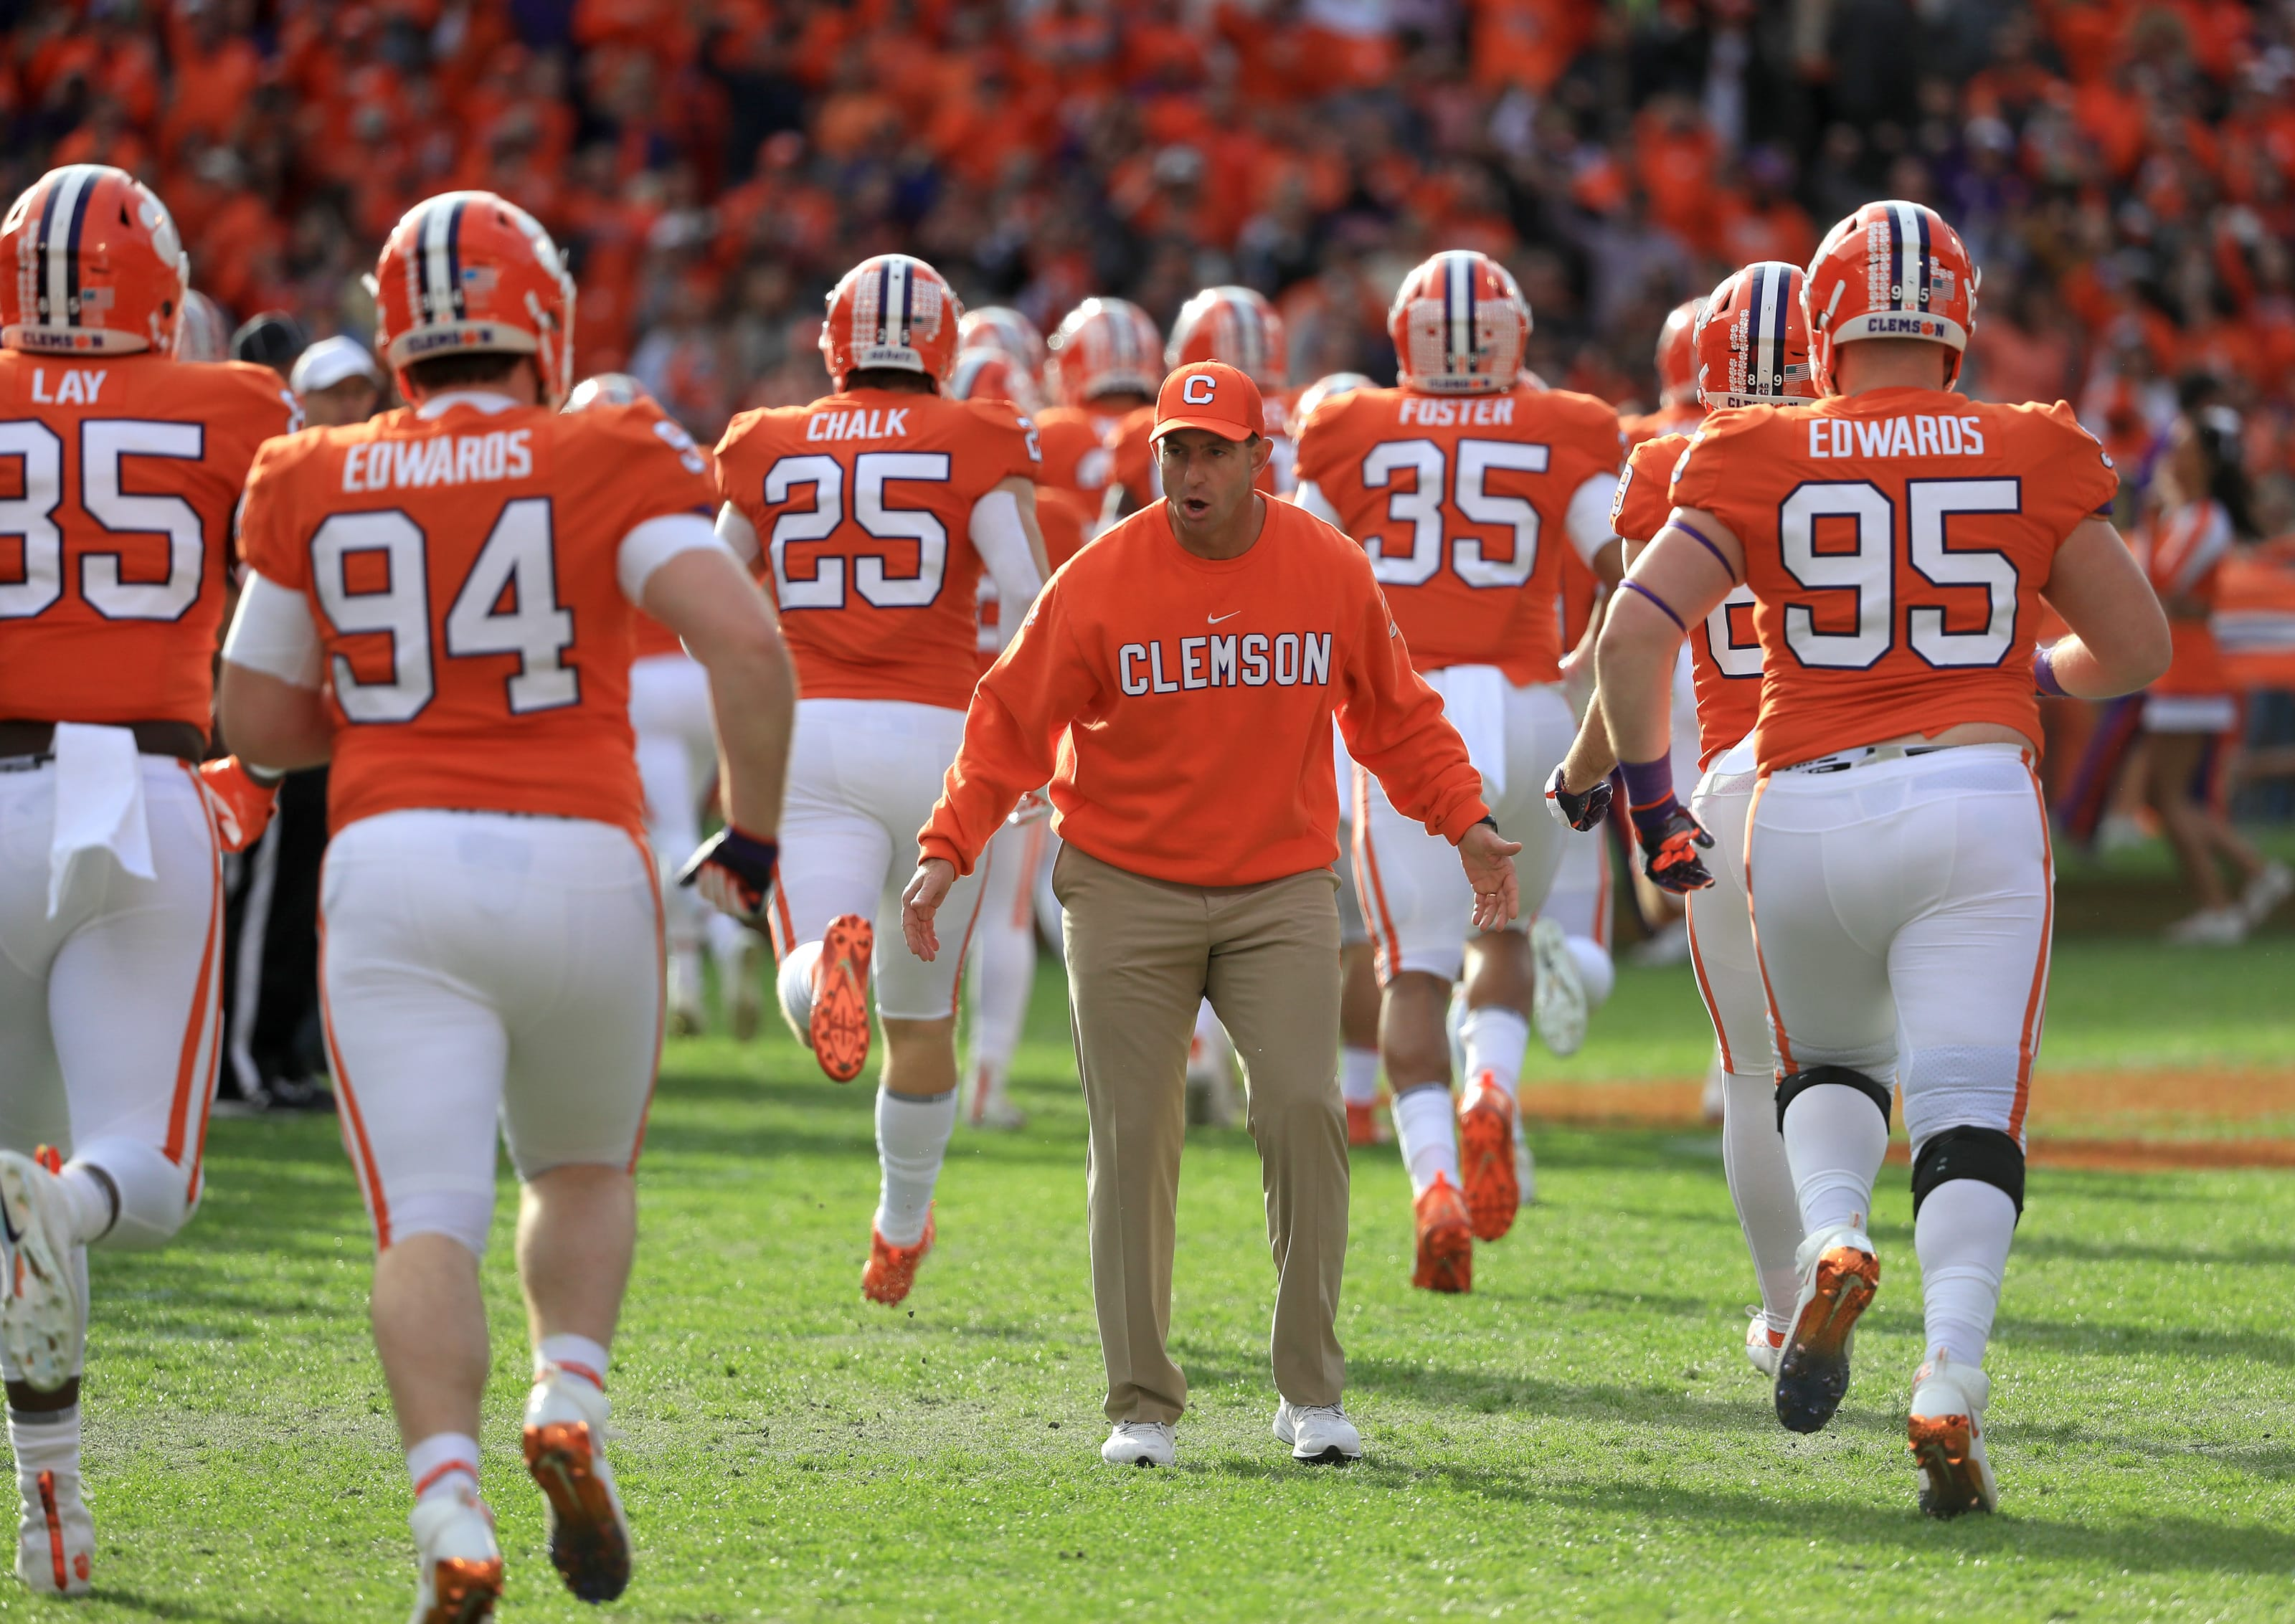 clemson football tigers spring poised breakout camp performances practice into players head game